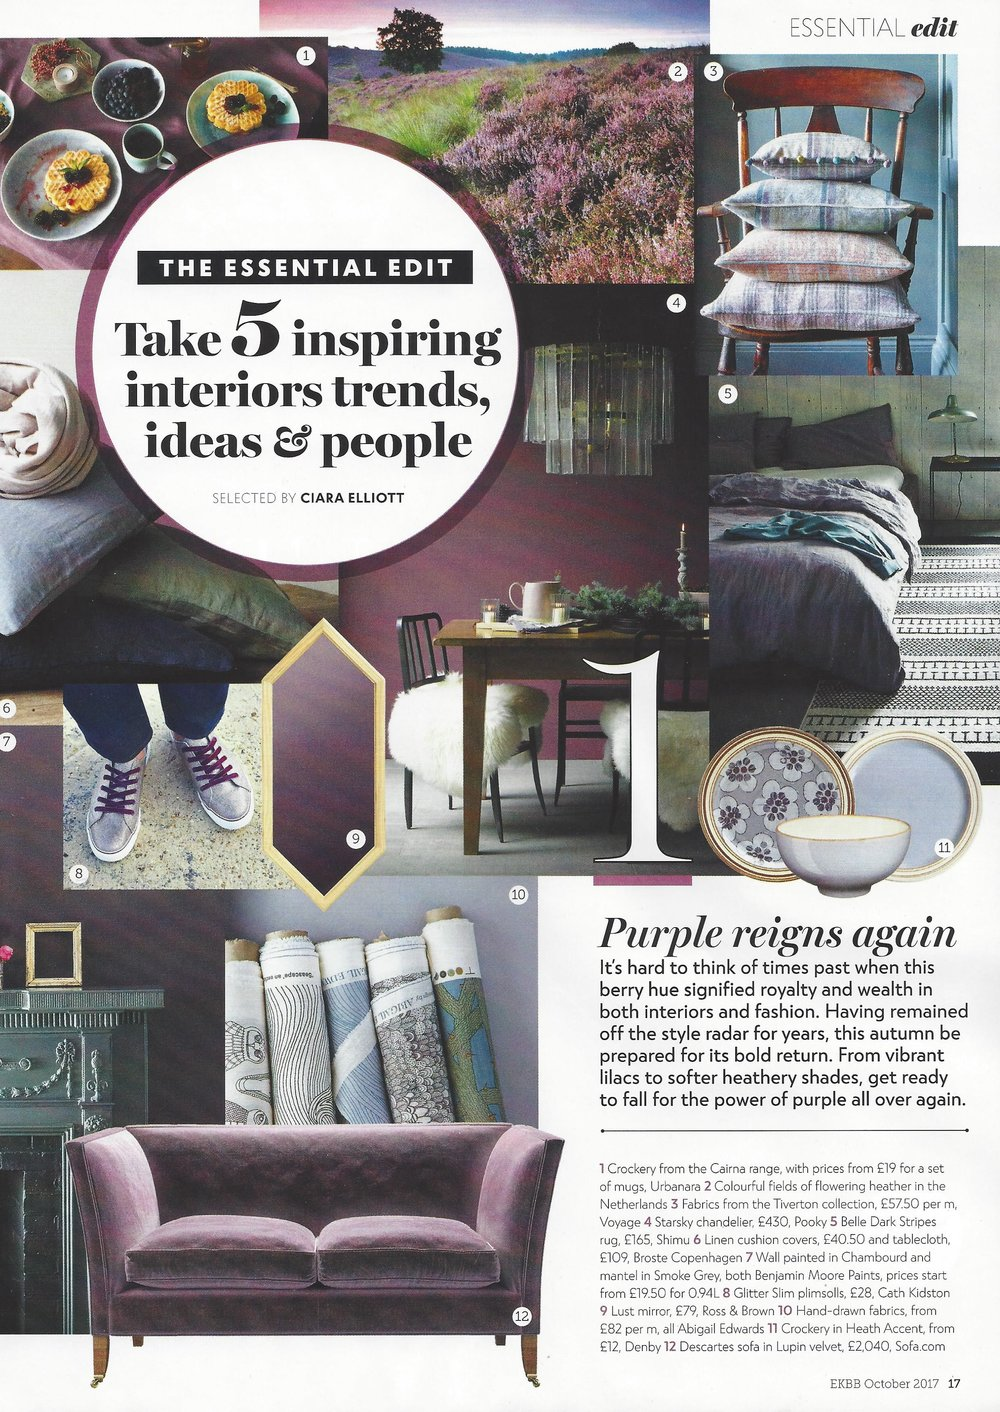 Fabric in EKBB Magazine